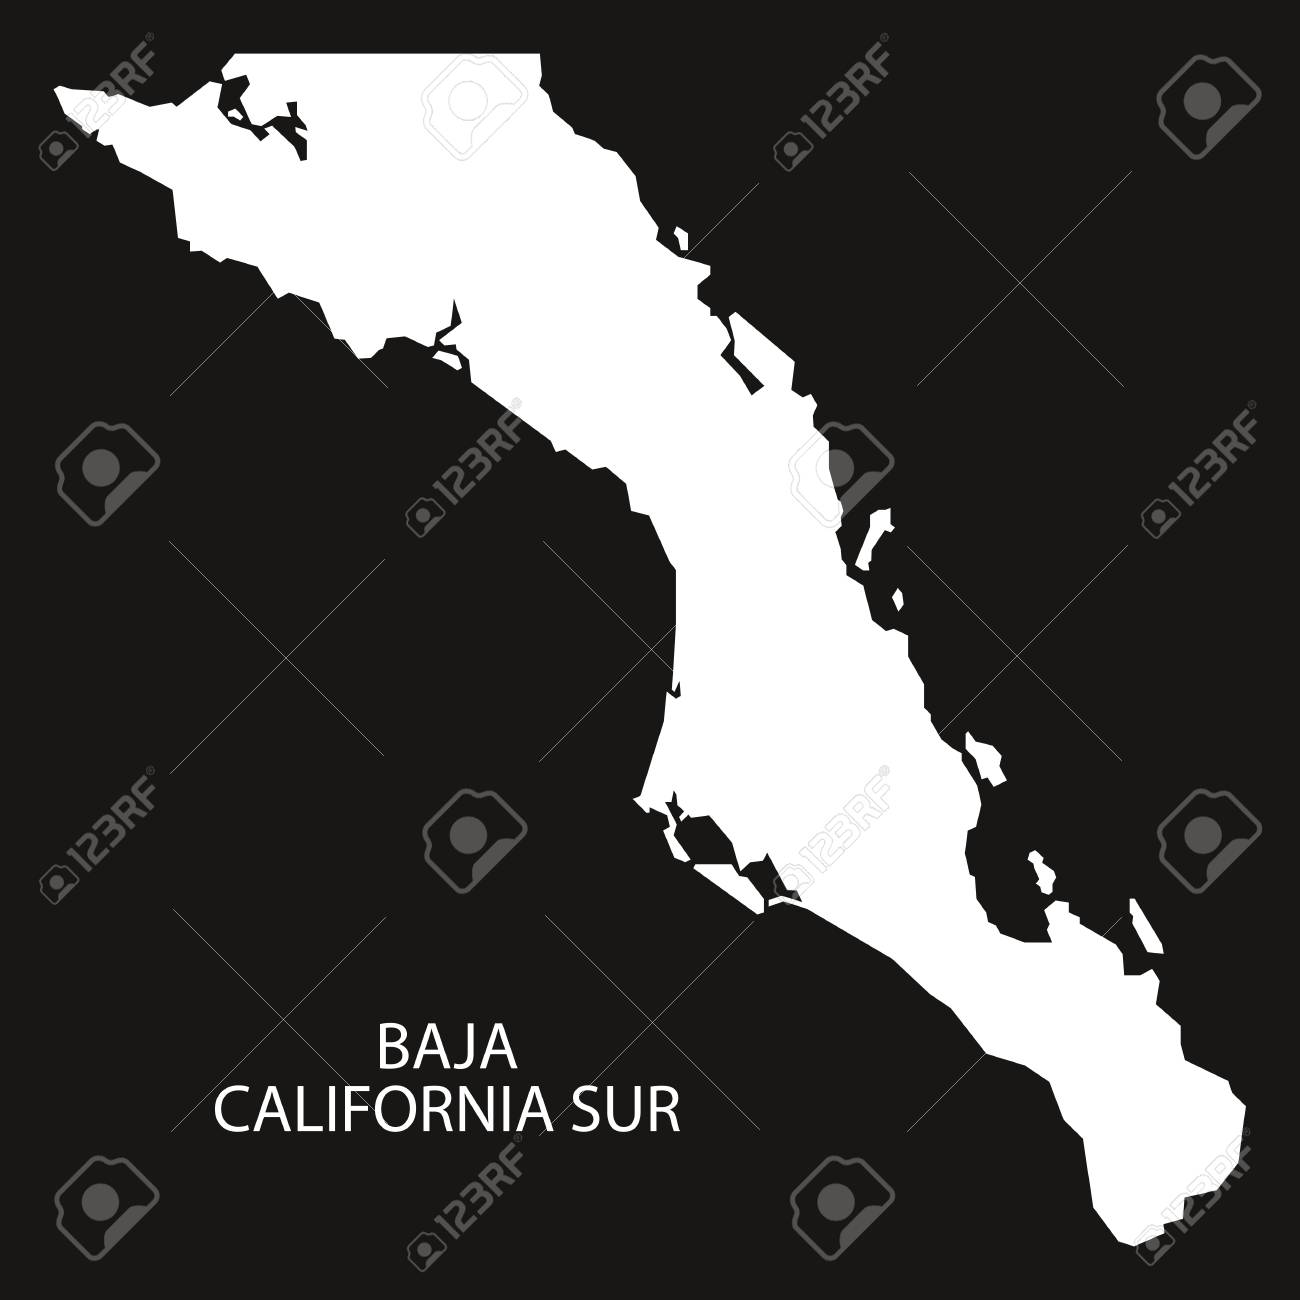 Baja California Sur Mexico Map Black Inverted Silhouette Royalty